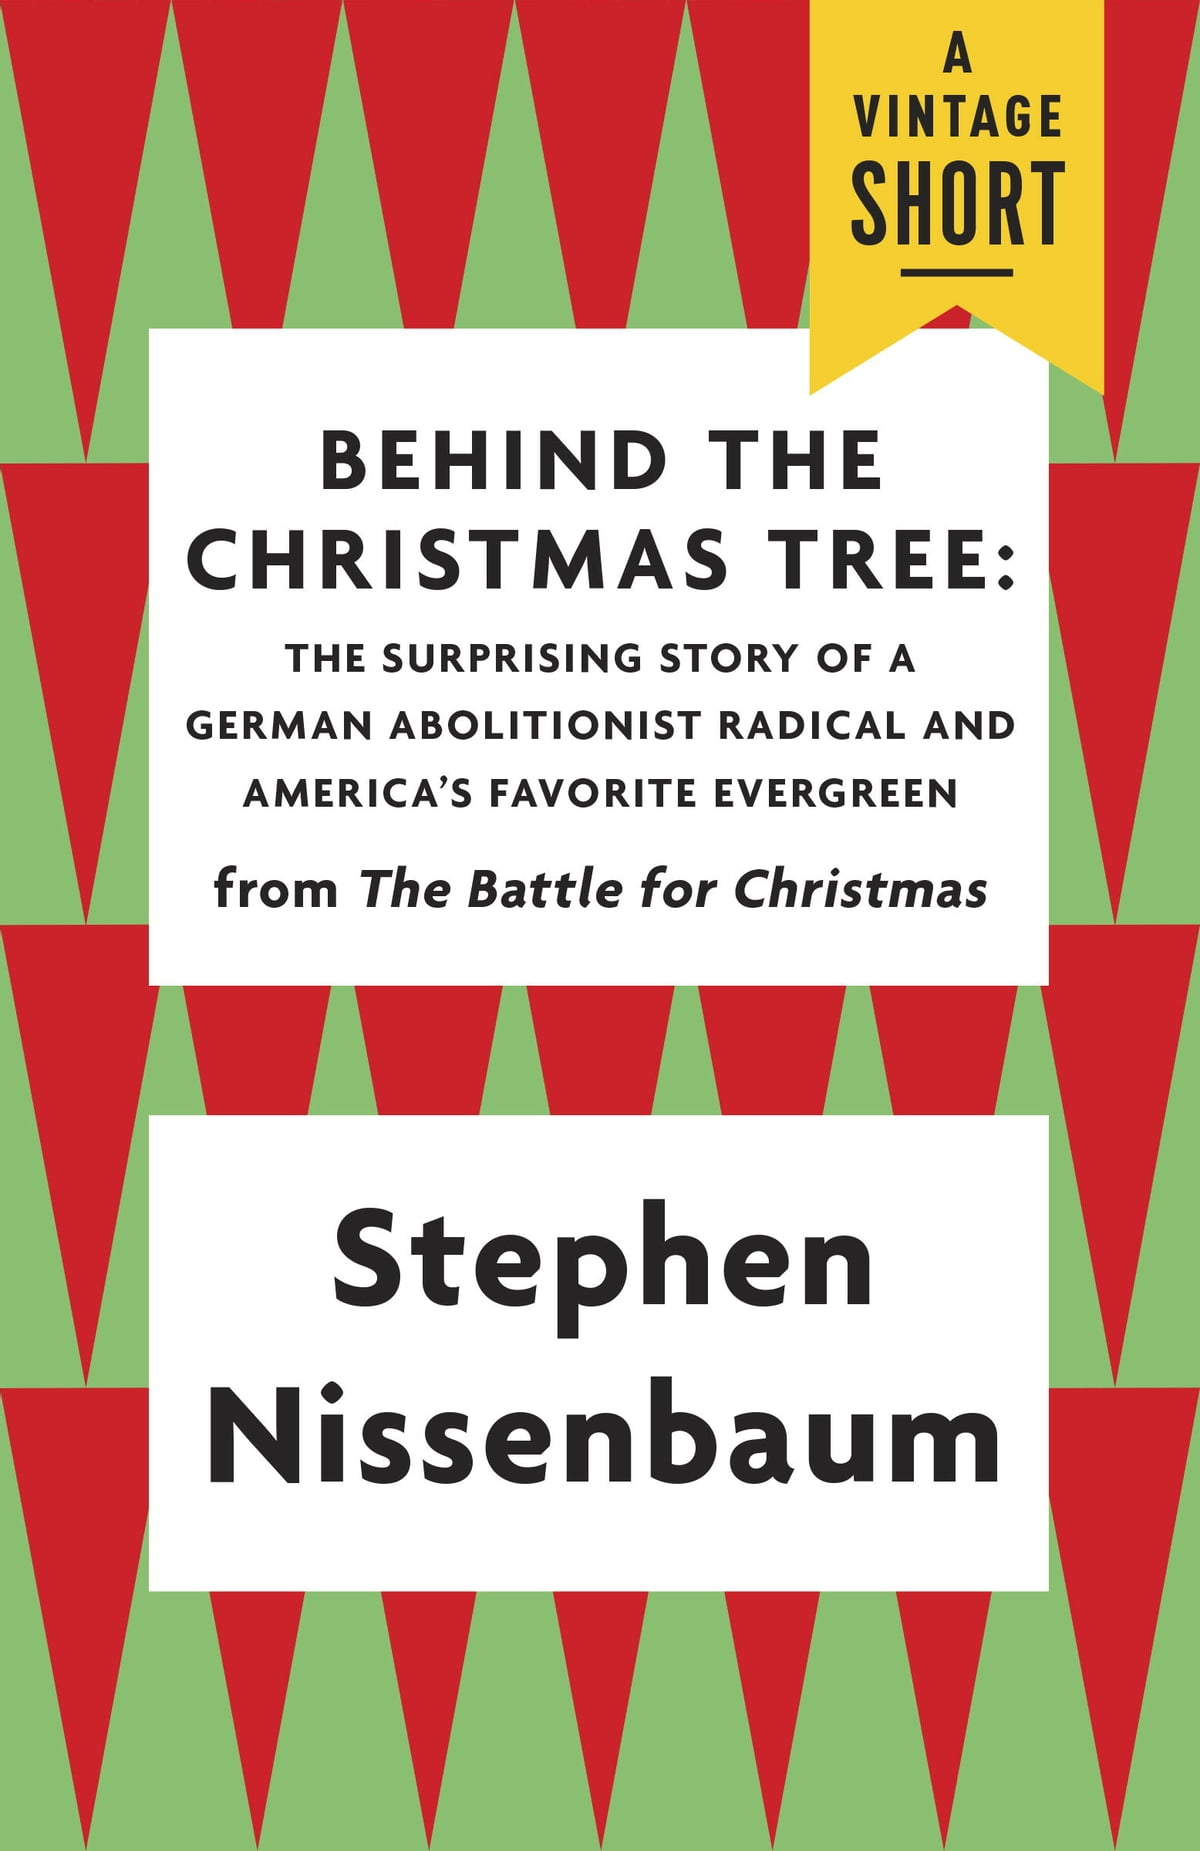 behind the christmas tree ebook by stephen nissenbaum 9781101911518 rakuten kobo